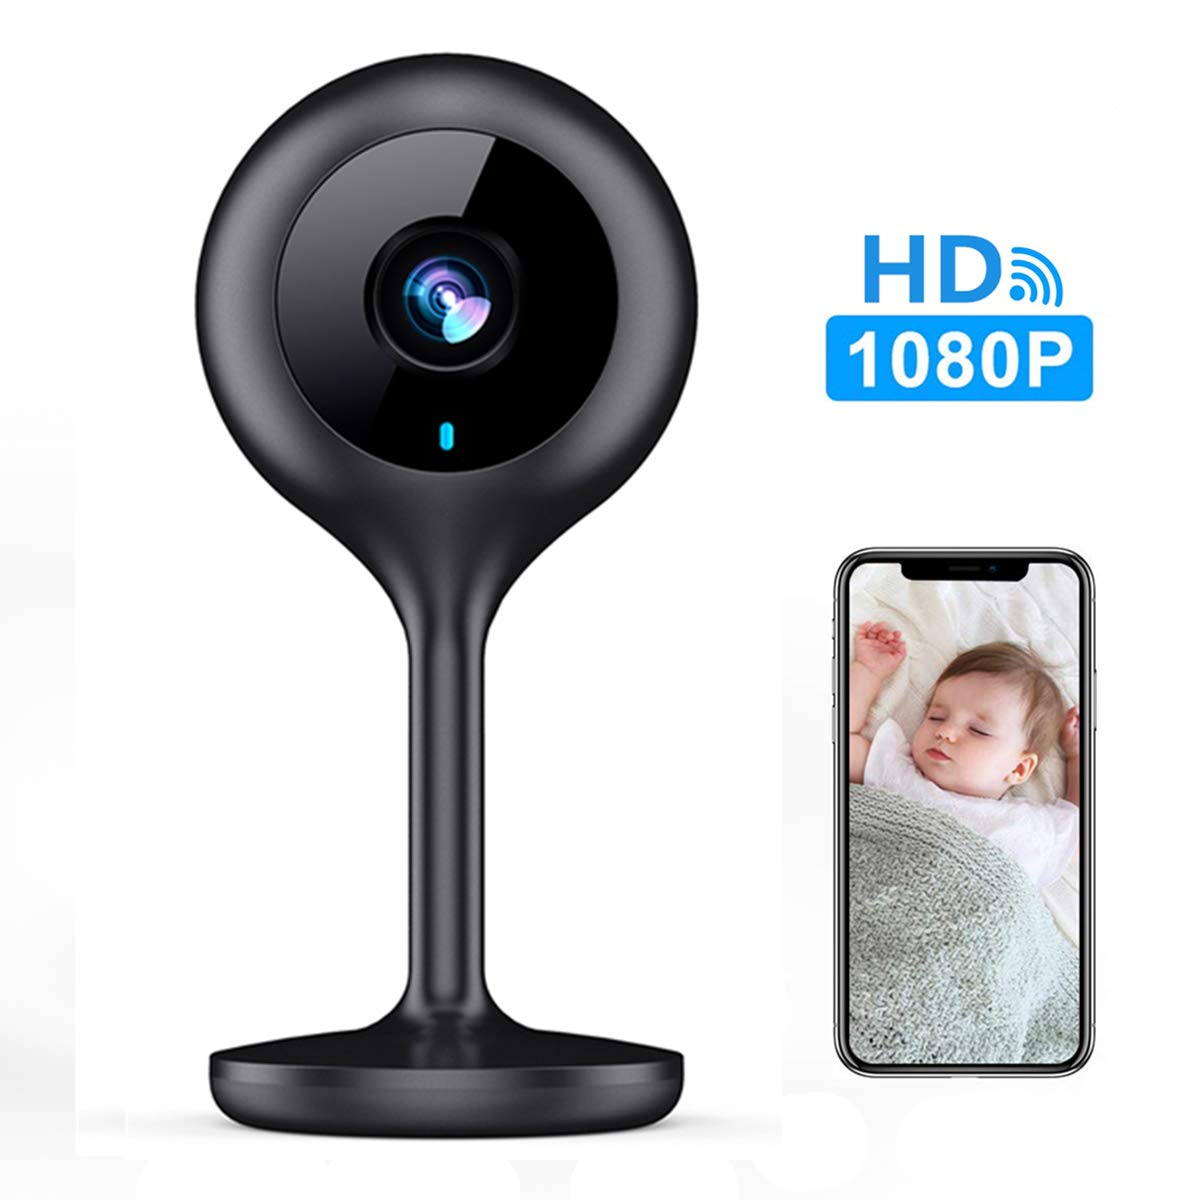 MECO WiFi IP Camera 1080P HD Home IP Security Nanny Camera with Night Vision, Sound & Motion Detection, Security Surveillance 2.4GHz Pet Baby Monitor - Cloud Service Available by MECO